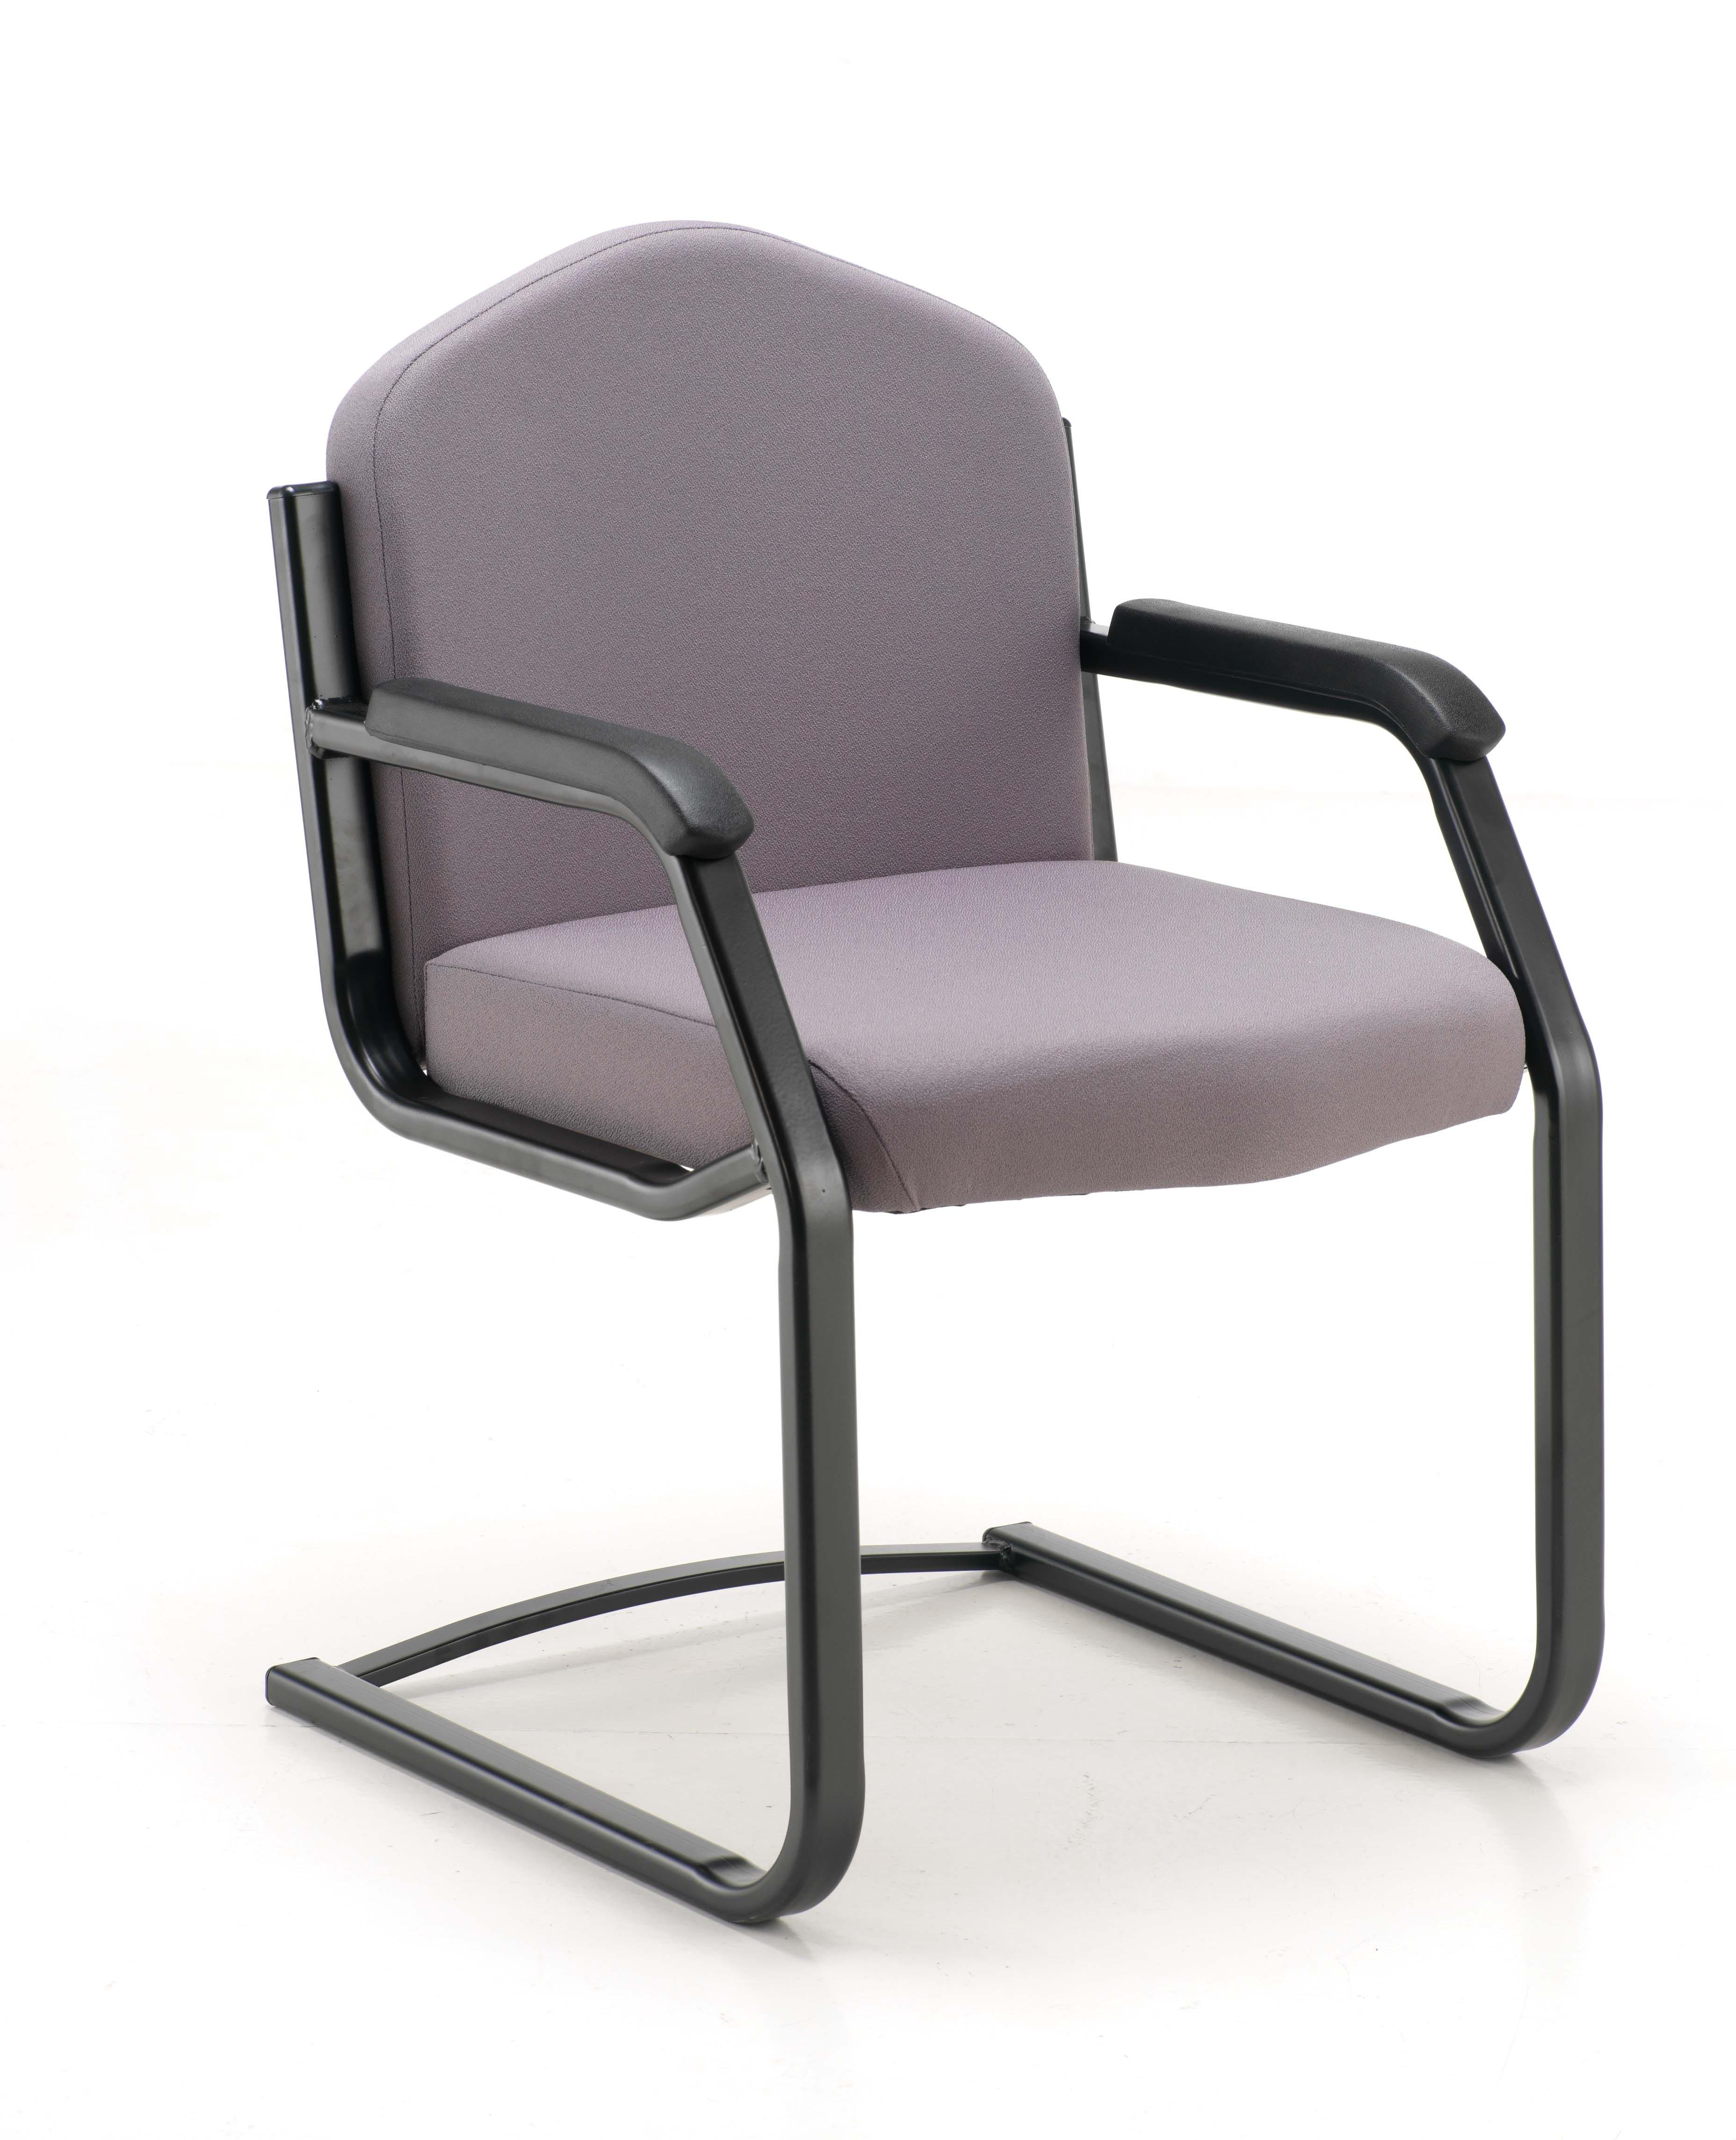 Heavy Duty Visitor Chairs Richardsons Office Furniture  : Heavy Duty Chairs 2 from www.richardsonsoffice.co.uk size 3712 x 4576 jpeg 926kB